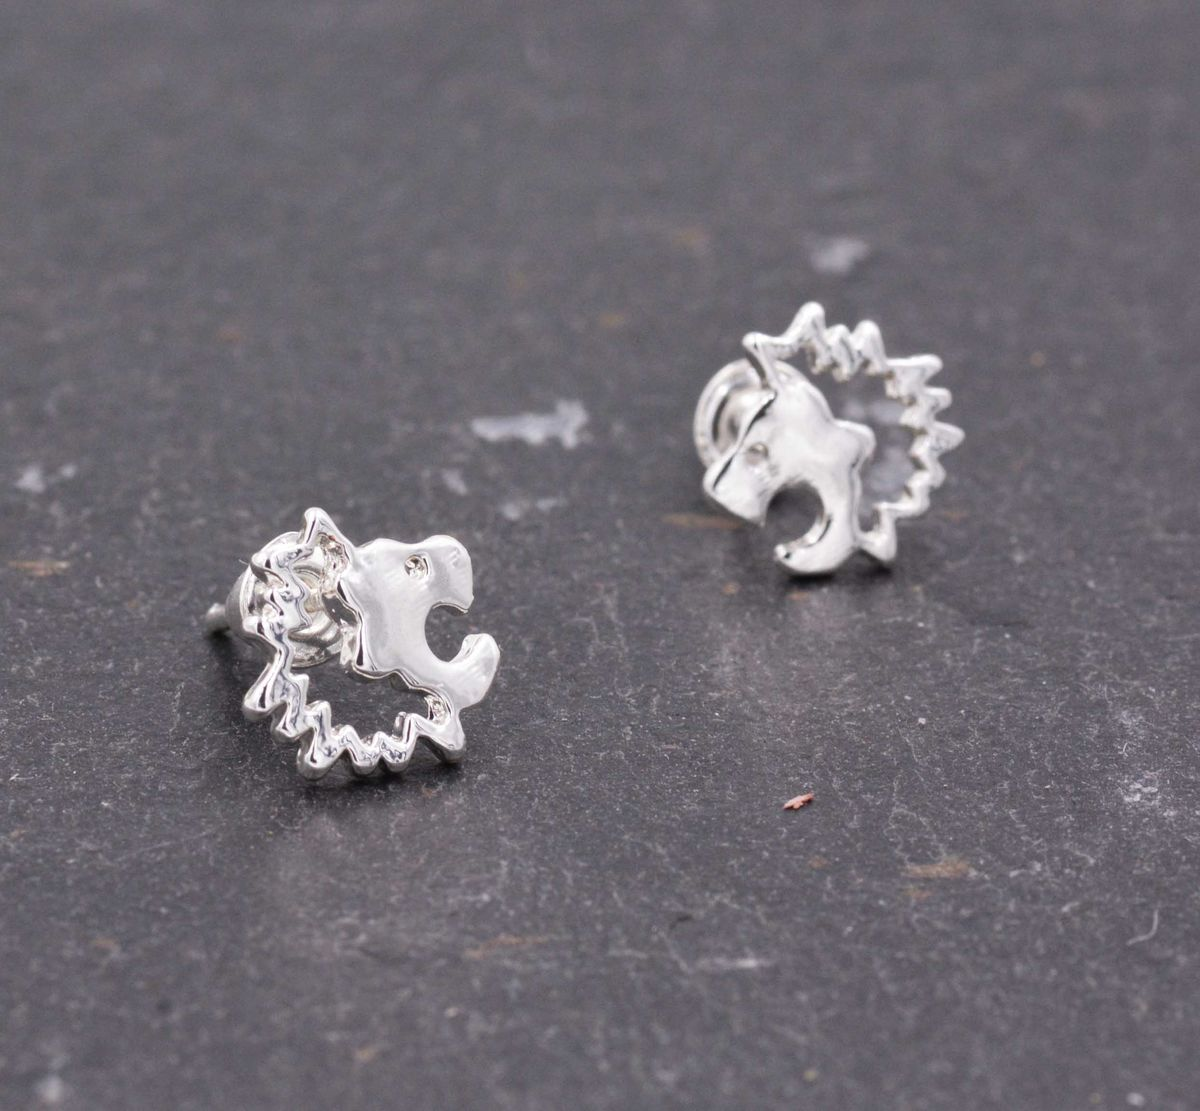 Silver Plated Little Roaring Lion Stud Earrings - Cute,  Fun and Quirky Jewellery - In Organza Bag.  - product images  of